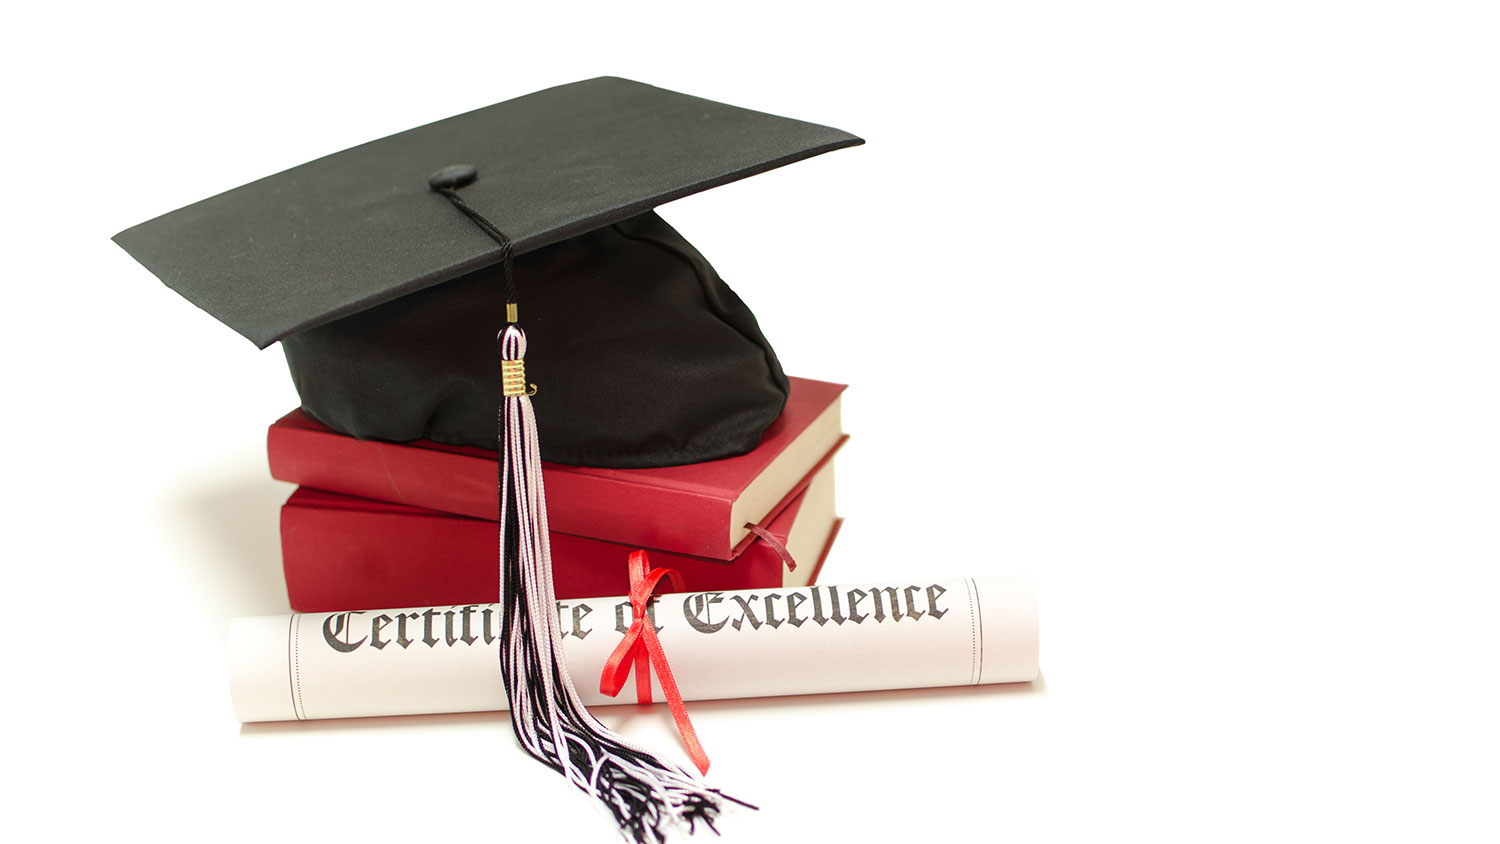 Mortarboard, books and certificate of excellence